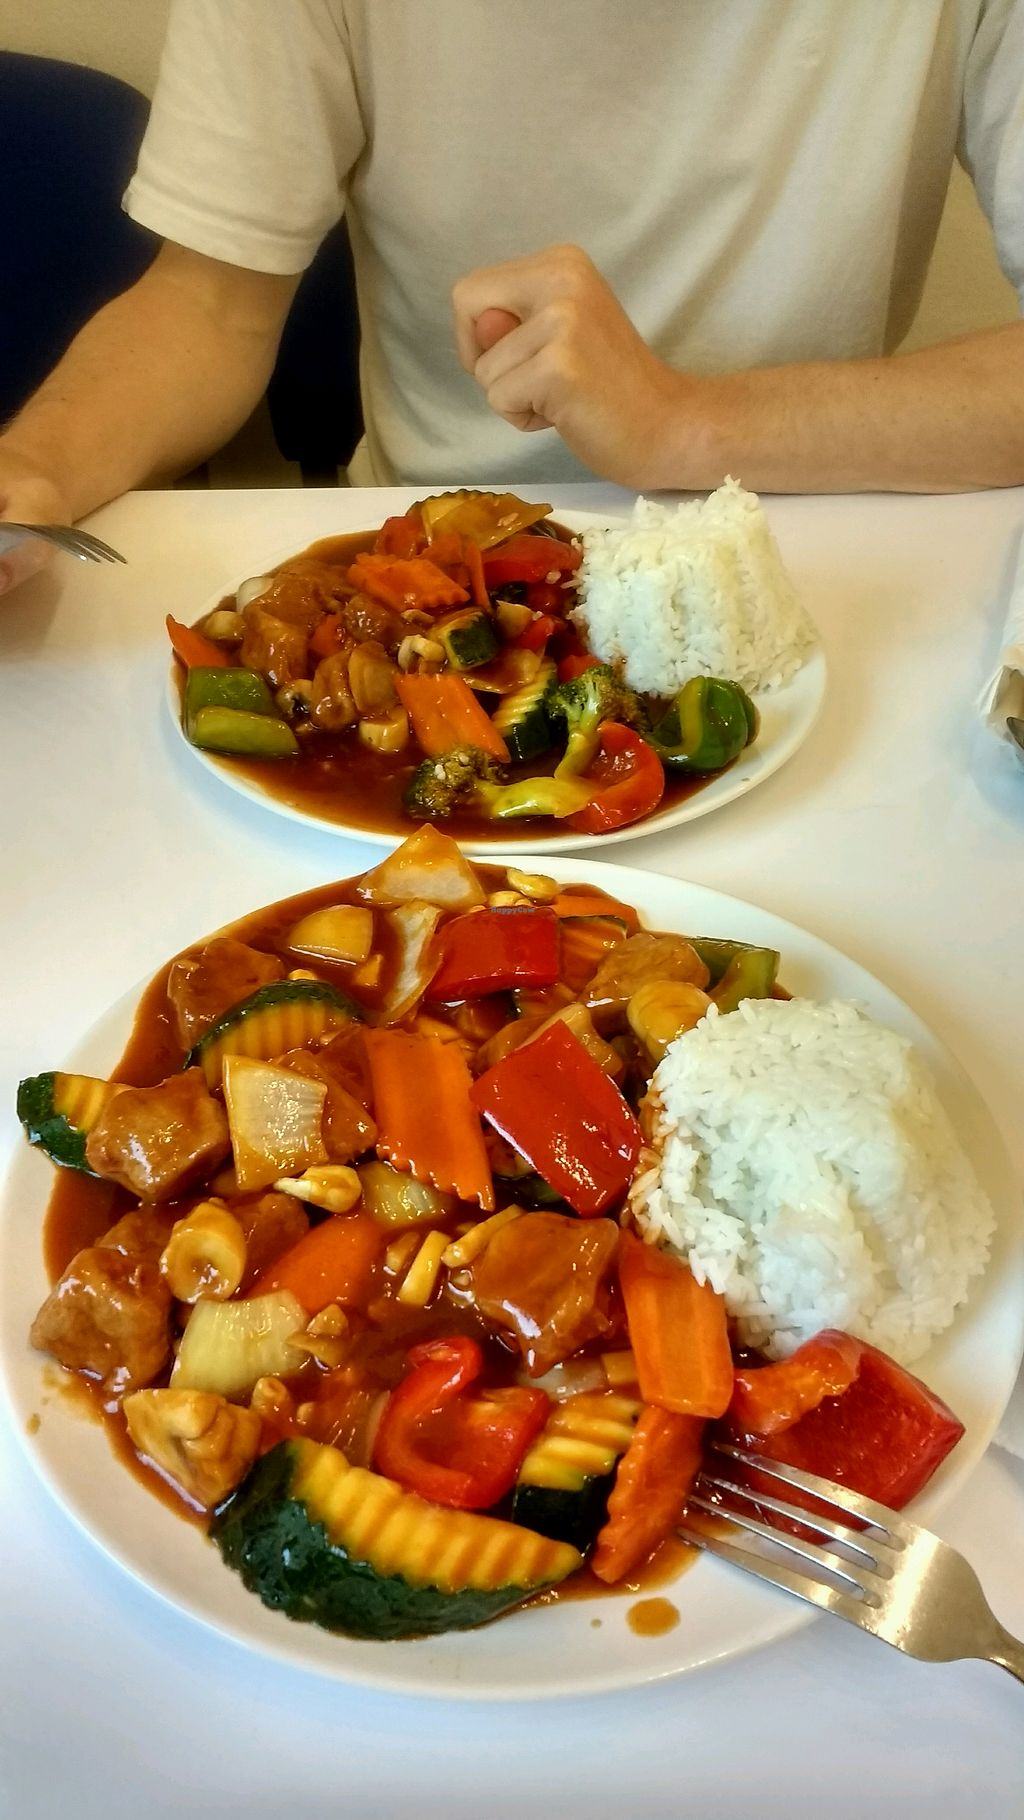 """Photo of Zau Vegetarian  by <a href=""""/members/profile/emzyl123"""">emzyl123</a> <br/>different? <br/> May 11, 2018  - <a href='/contact/abuse/image/103379/398366'>Report</a>"""